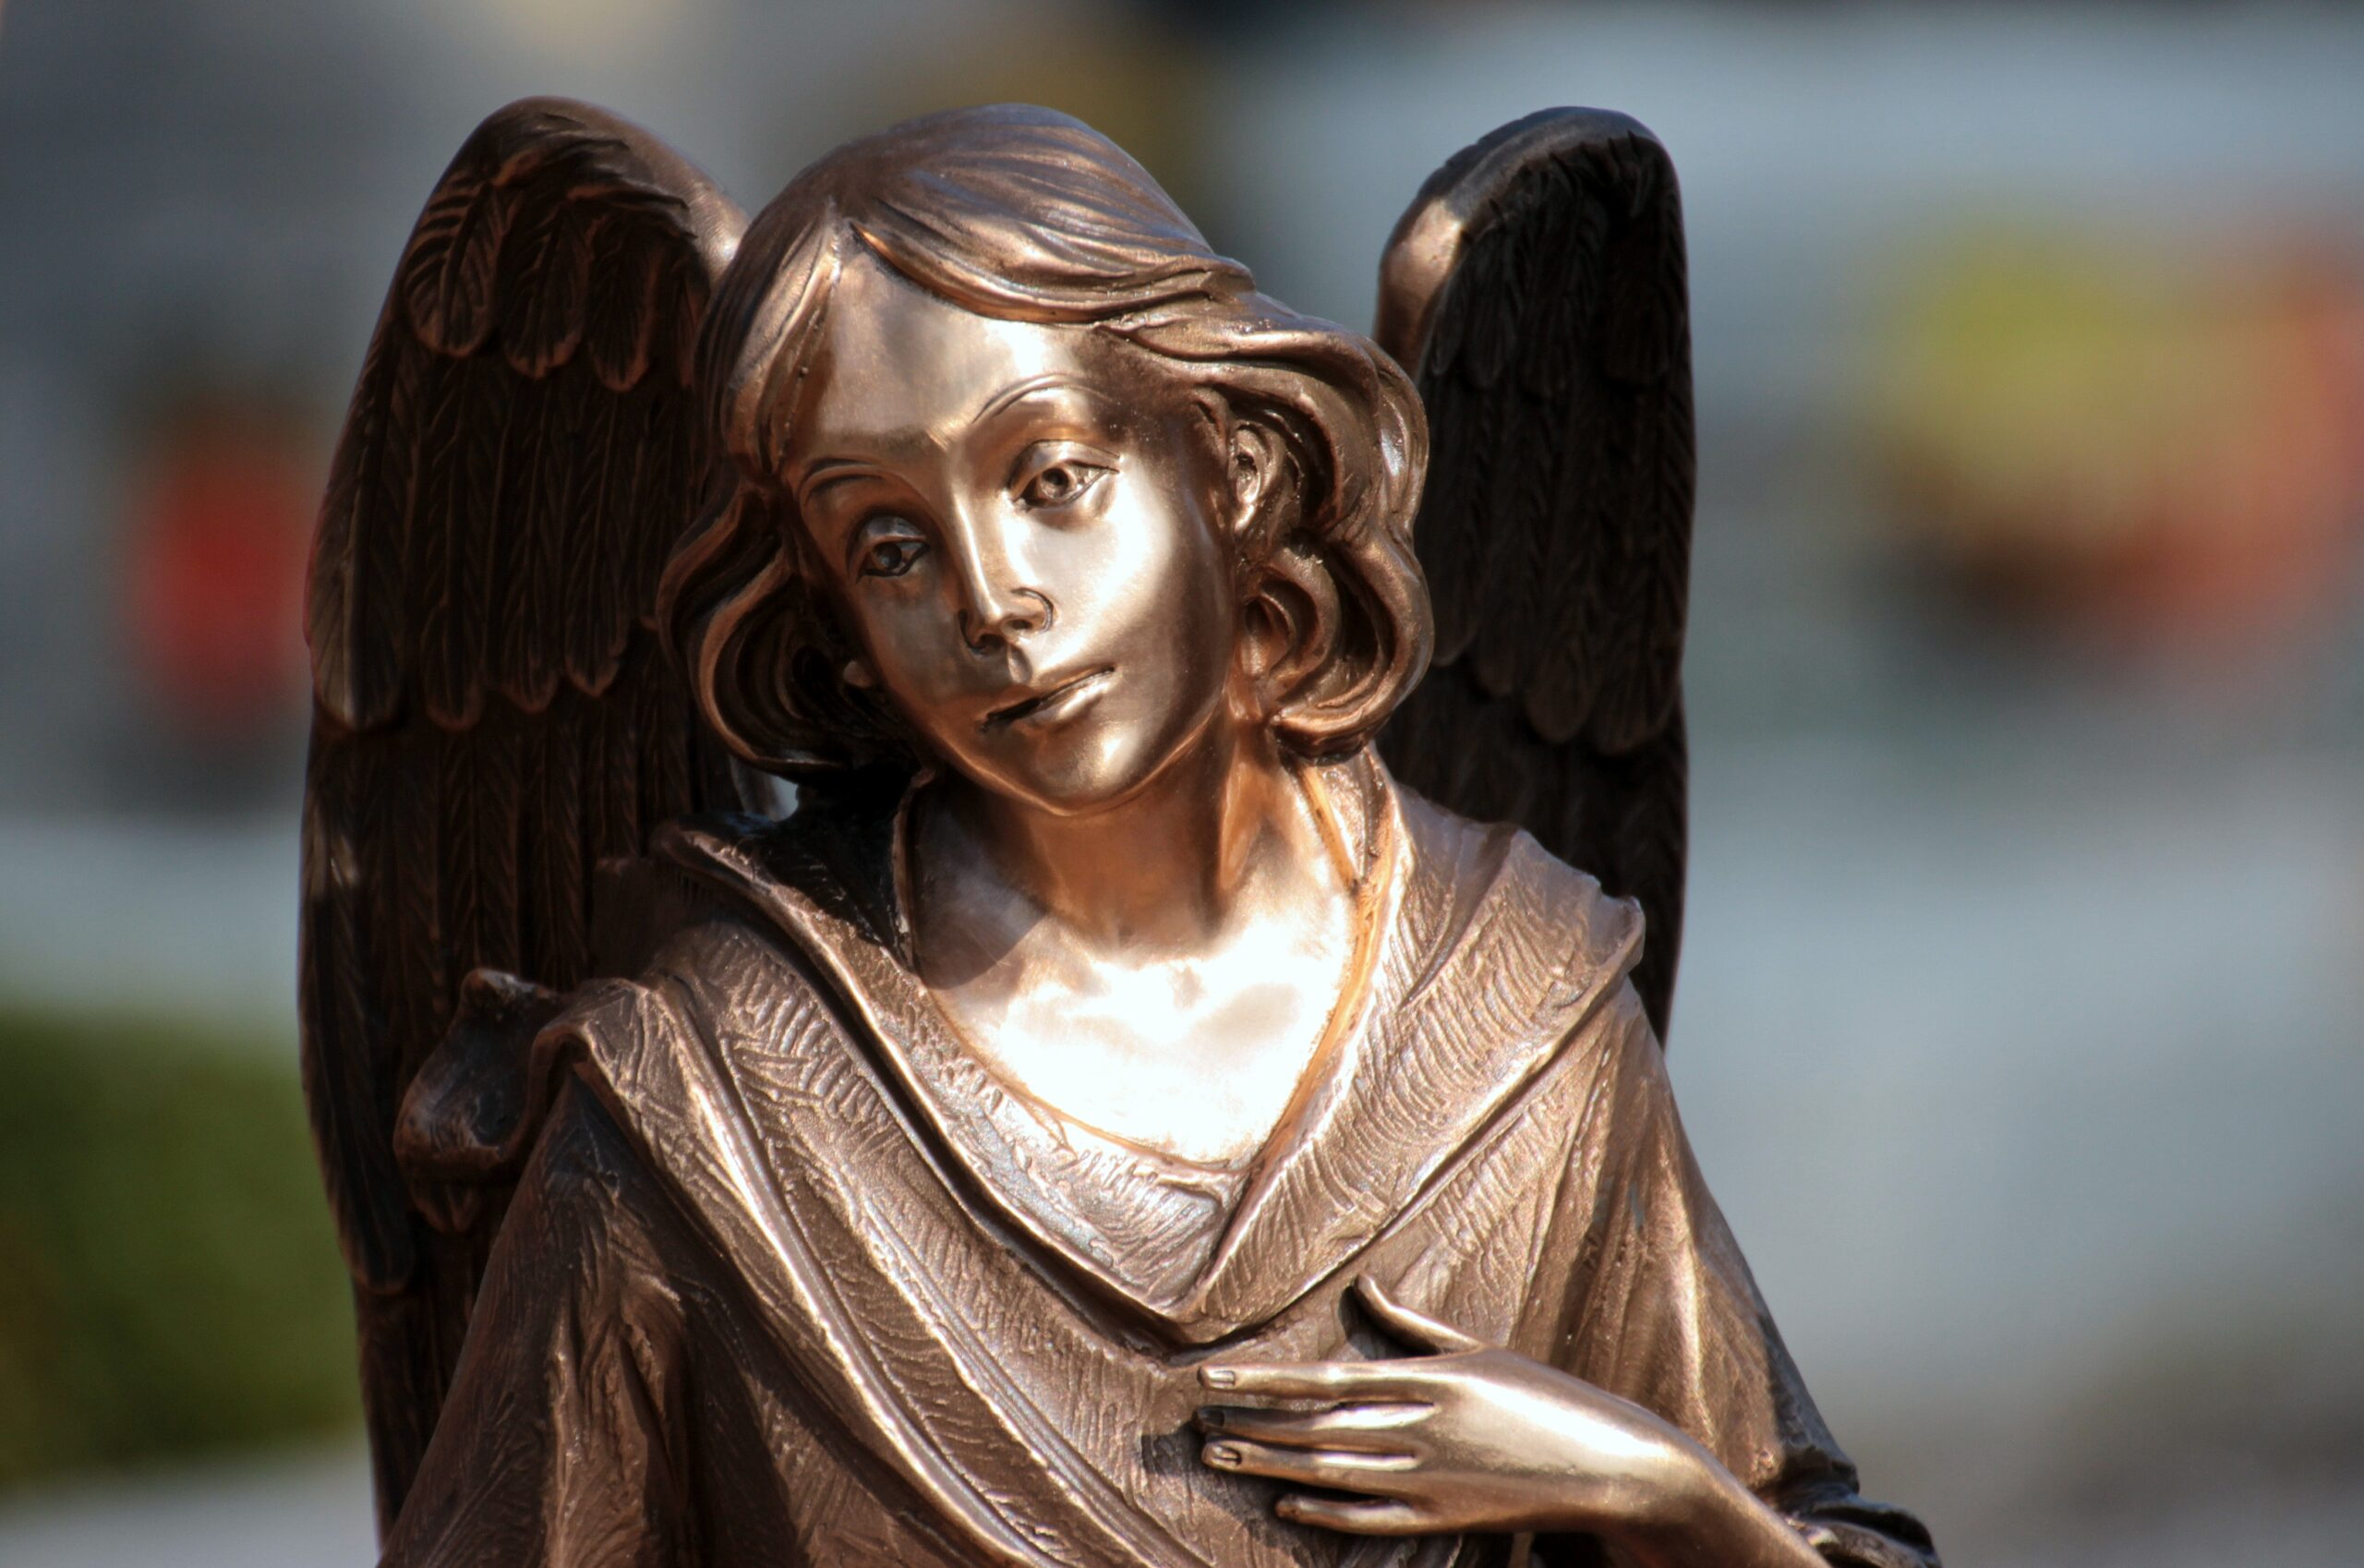 https://get.pxhere.com/photo/sweet-monument-statue-symbol-sculpture-angel-art-temple-tomb-angel-figure-mourning-consolation-bronze-statue-angel-wings-angel-face-fictional-character-816147.jpg